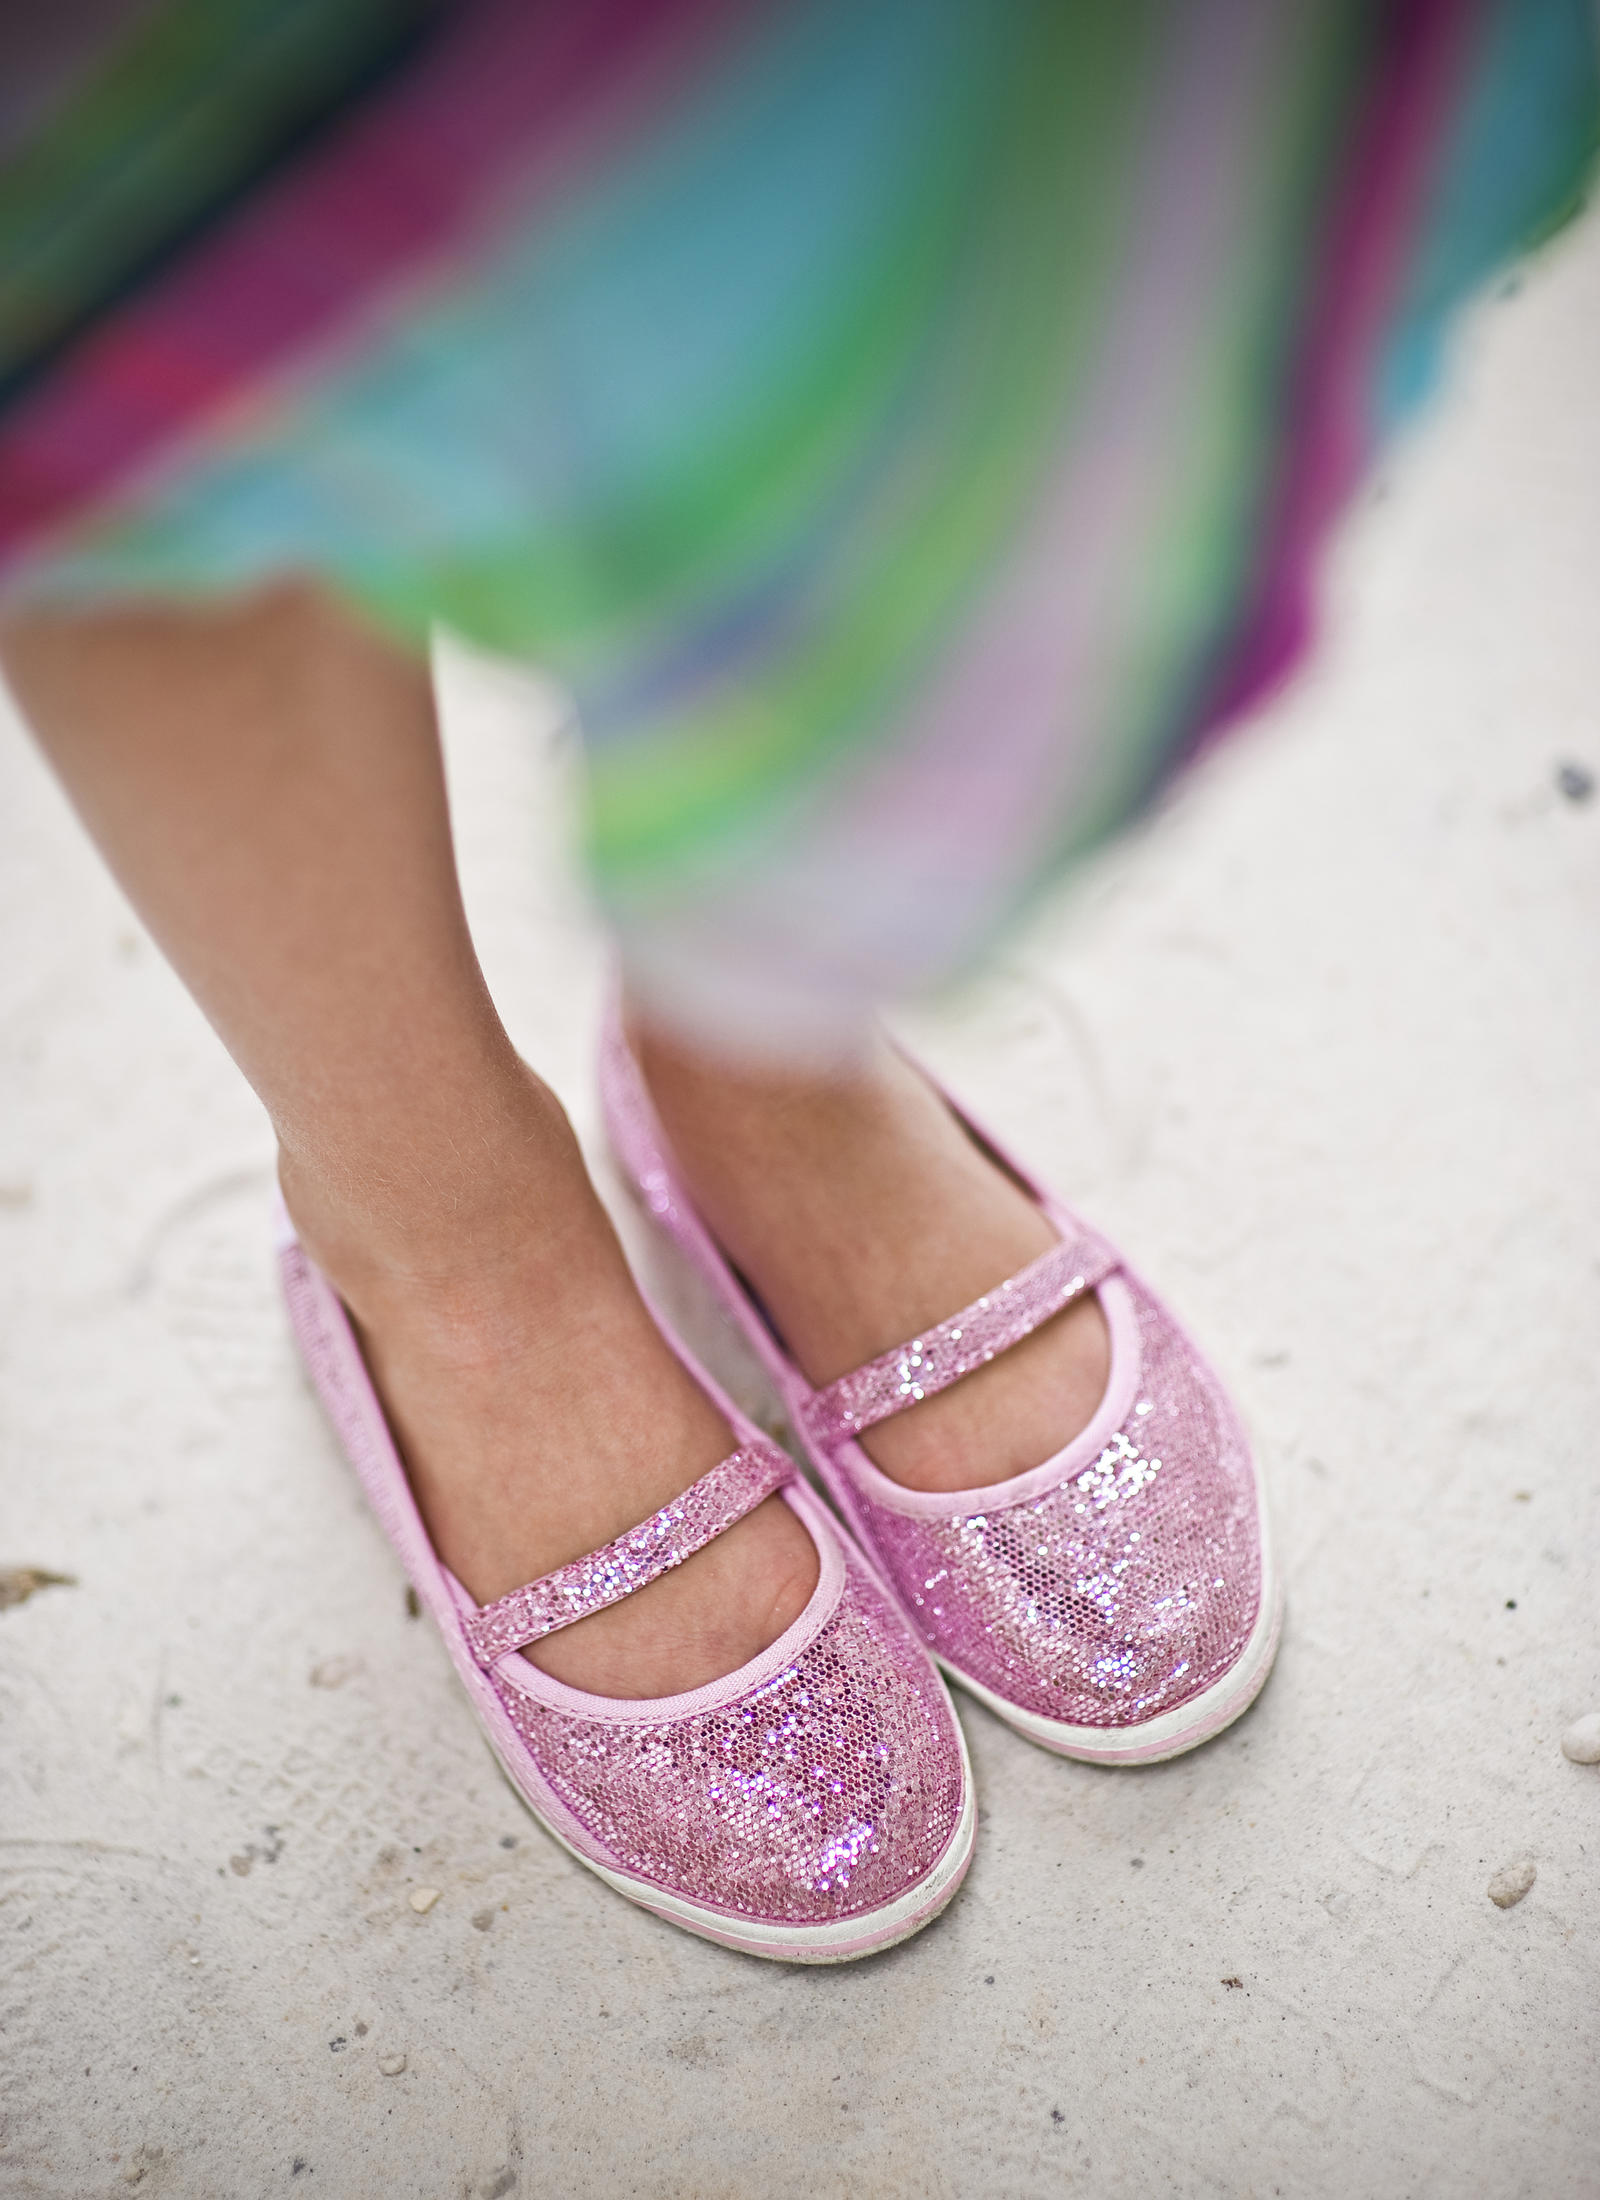 Lifestyle Photography | Atlanta, GA | A young girl stands on the beach in pink, sparkly shoes.